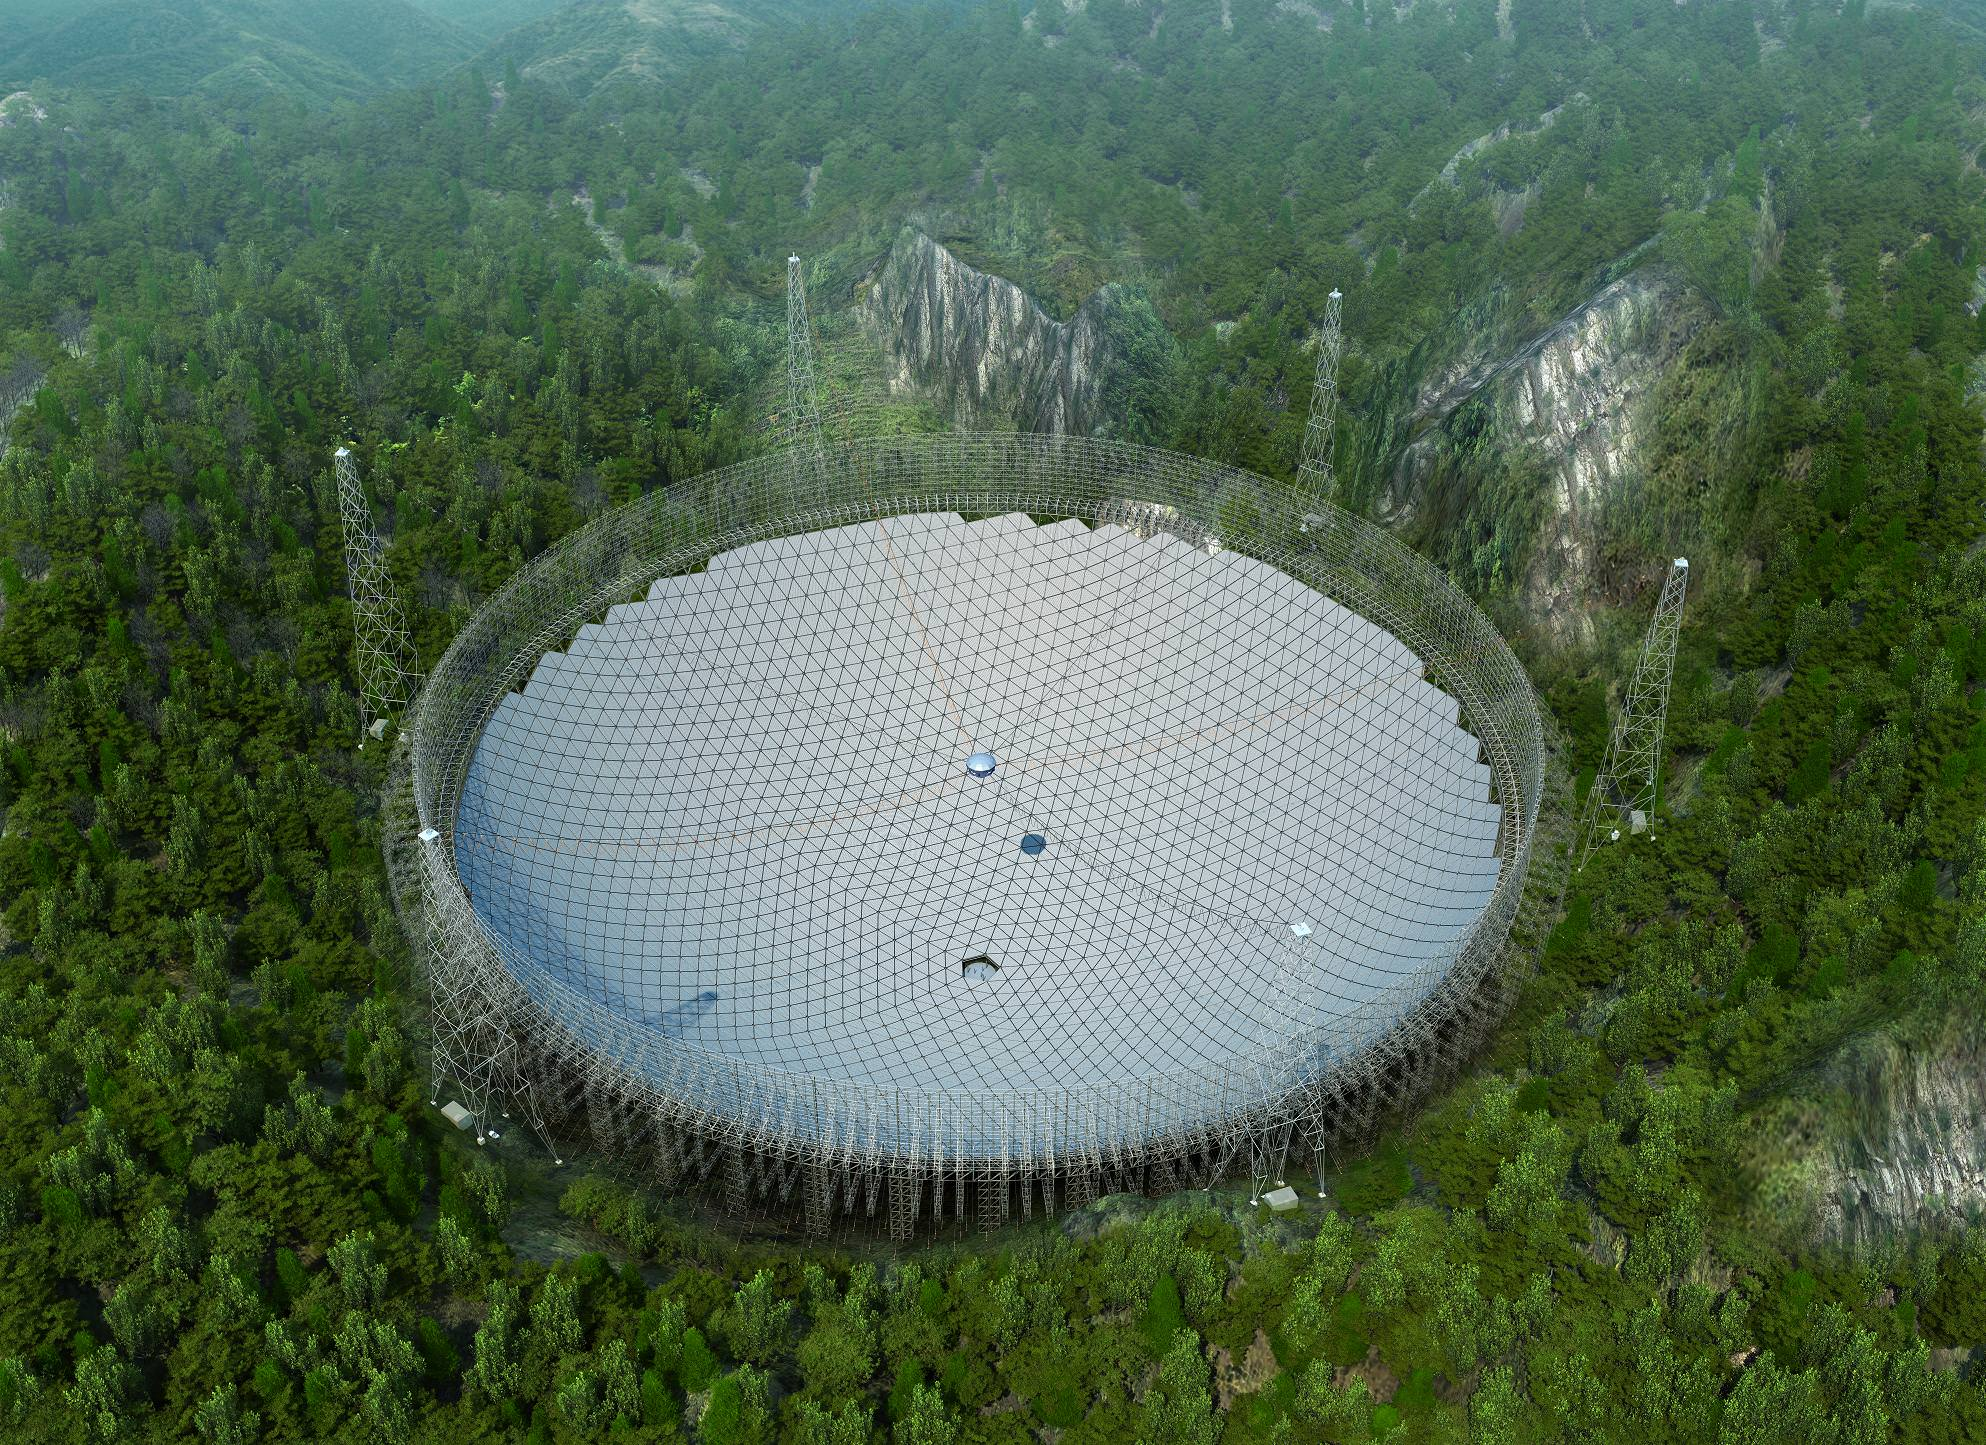 China's FAST Telescope, the World's Largest Single Radio Dish Telescope, is Now Fully Operational